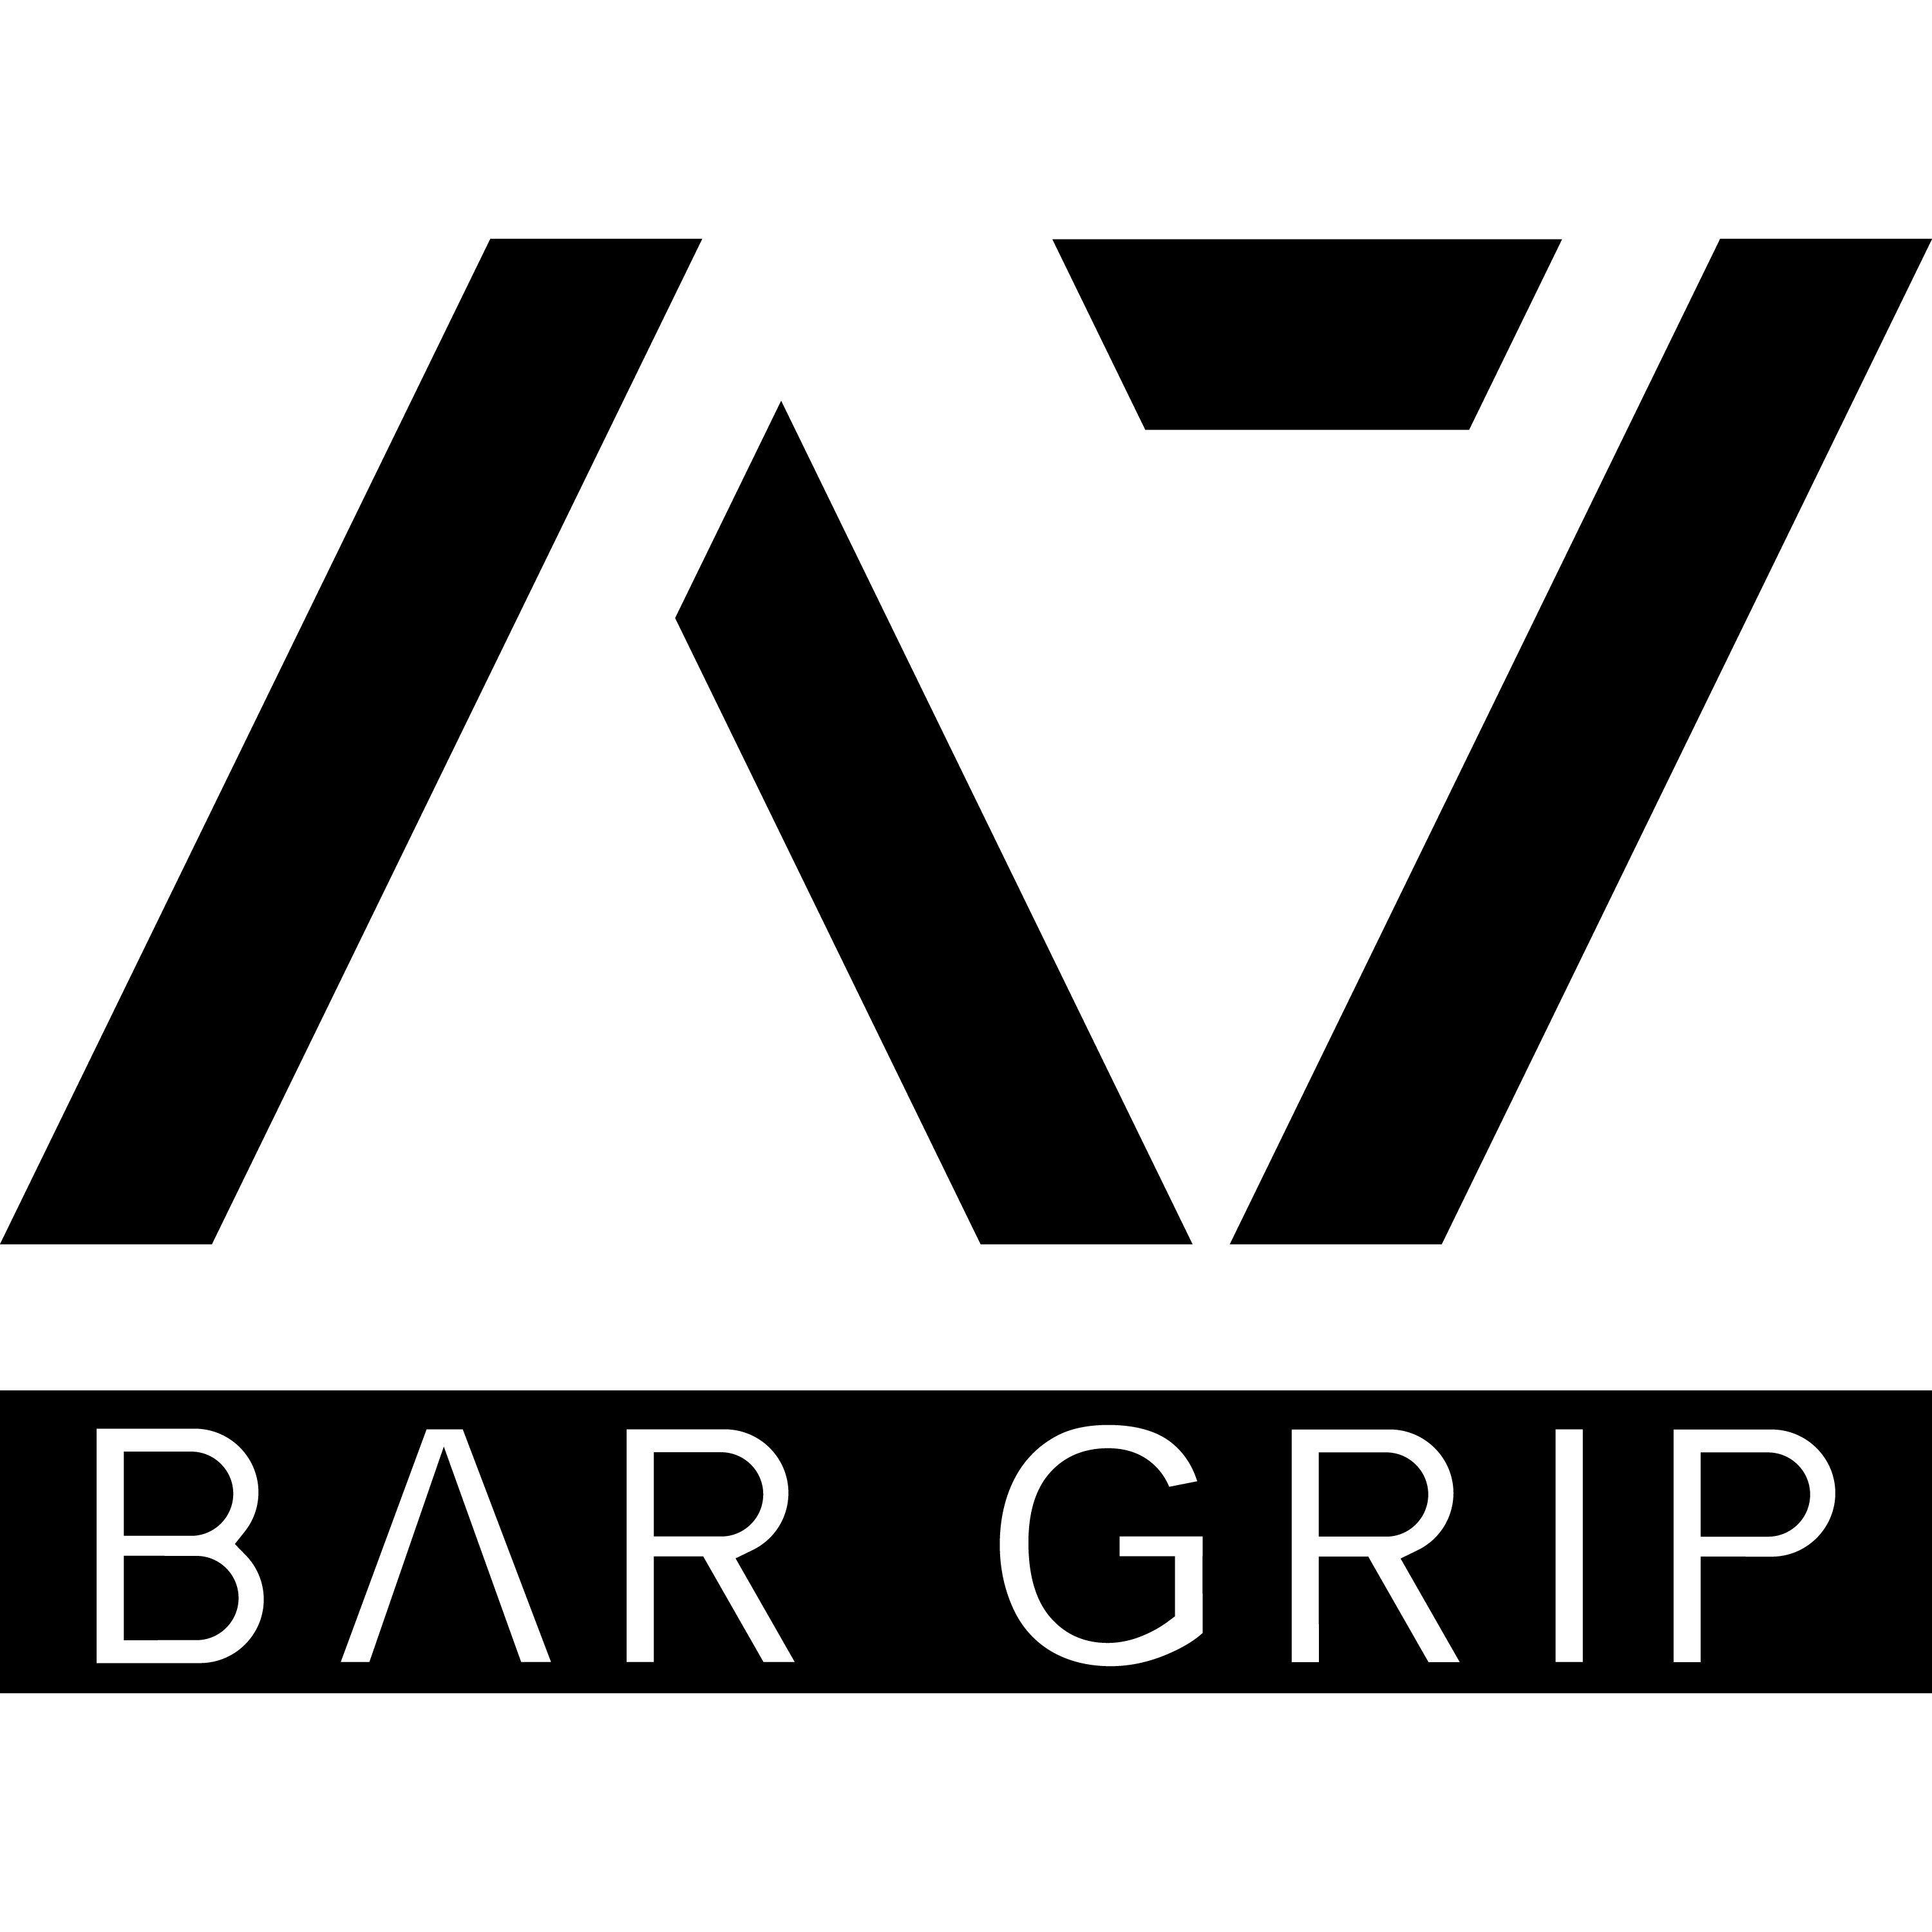 a7-bar-grip-logo-arnold-2017-01